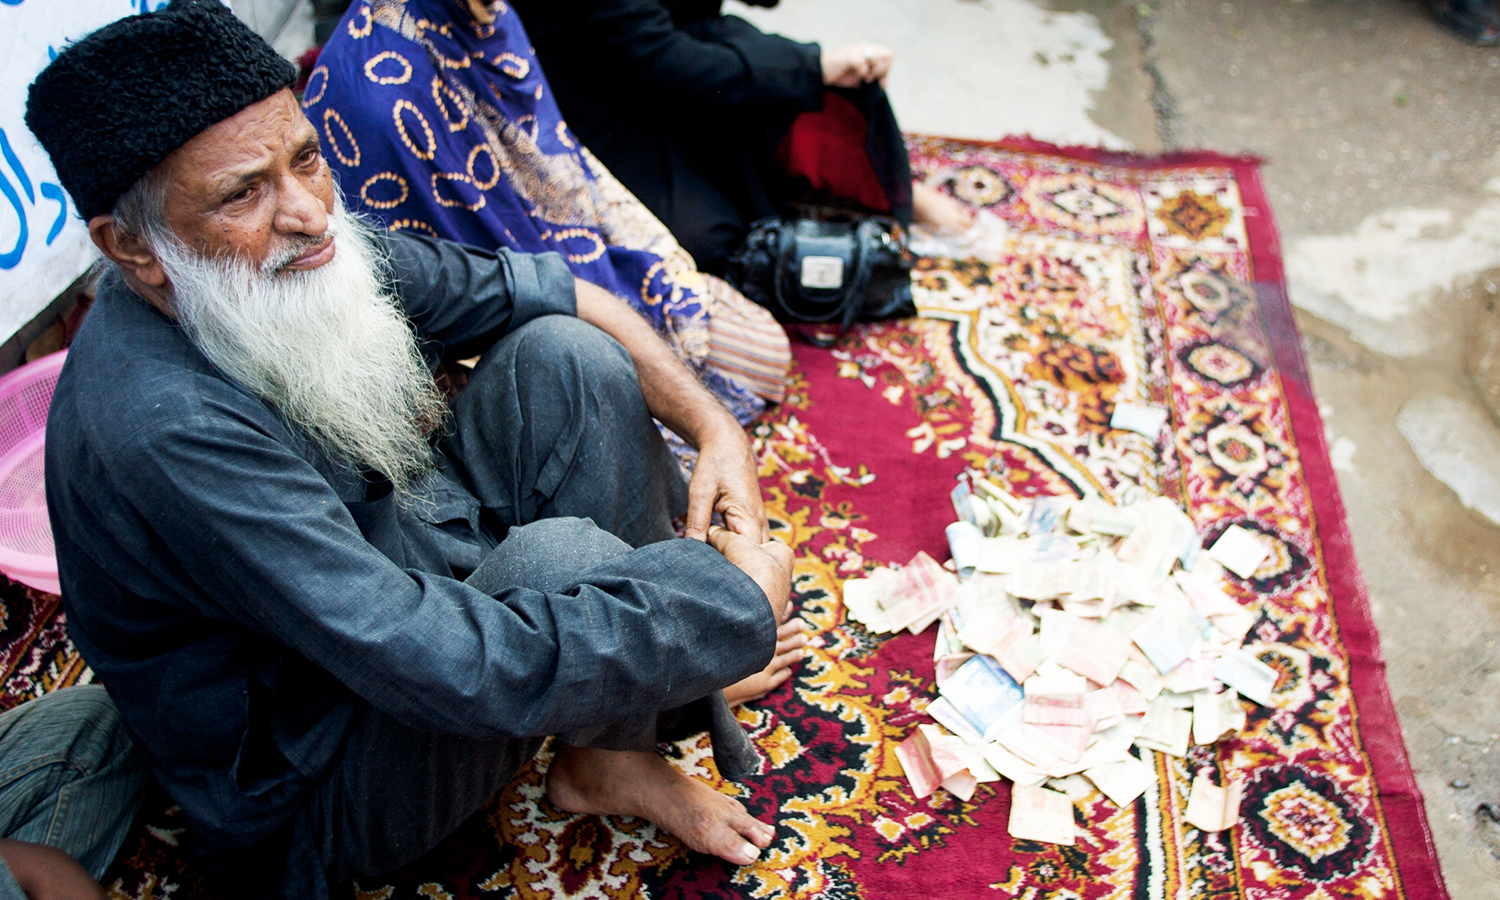 Abdul Sattar Edhi collects donations at a roadside in Peshawar. — AP Photo